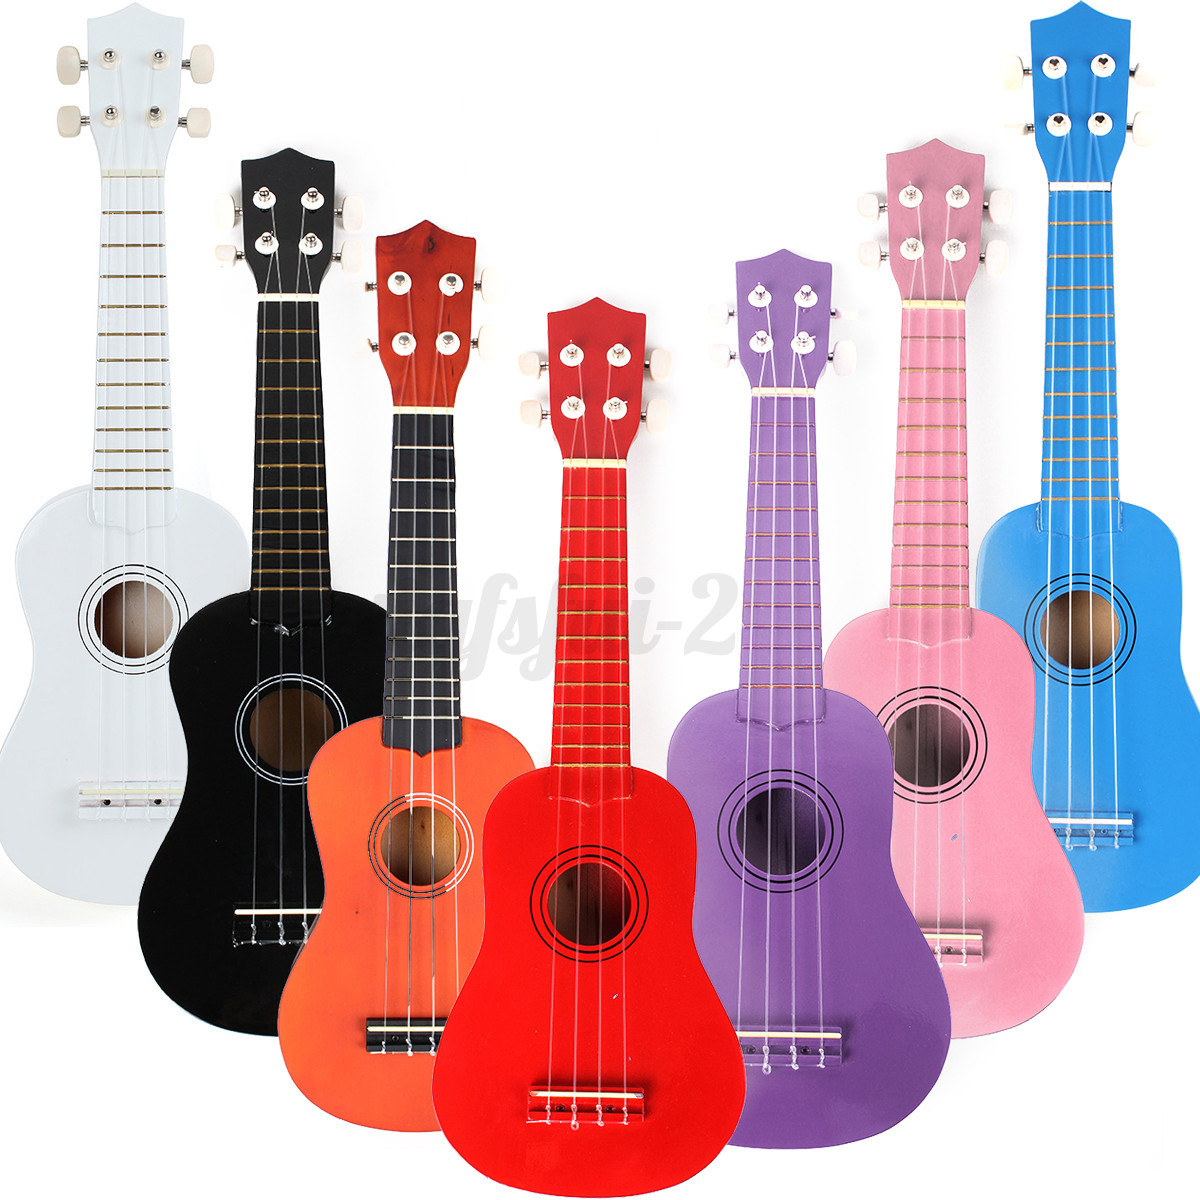 ukeleles on ebay 2